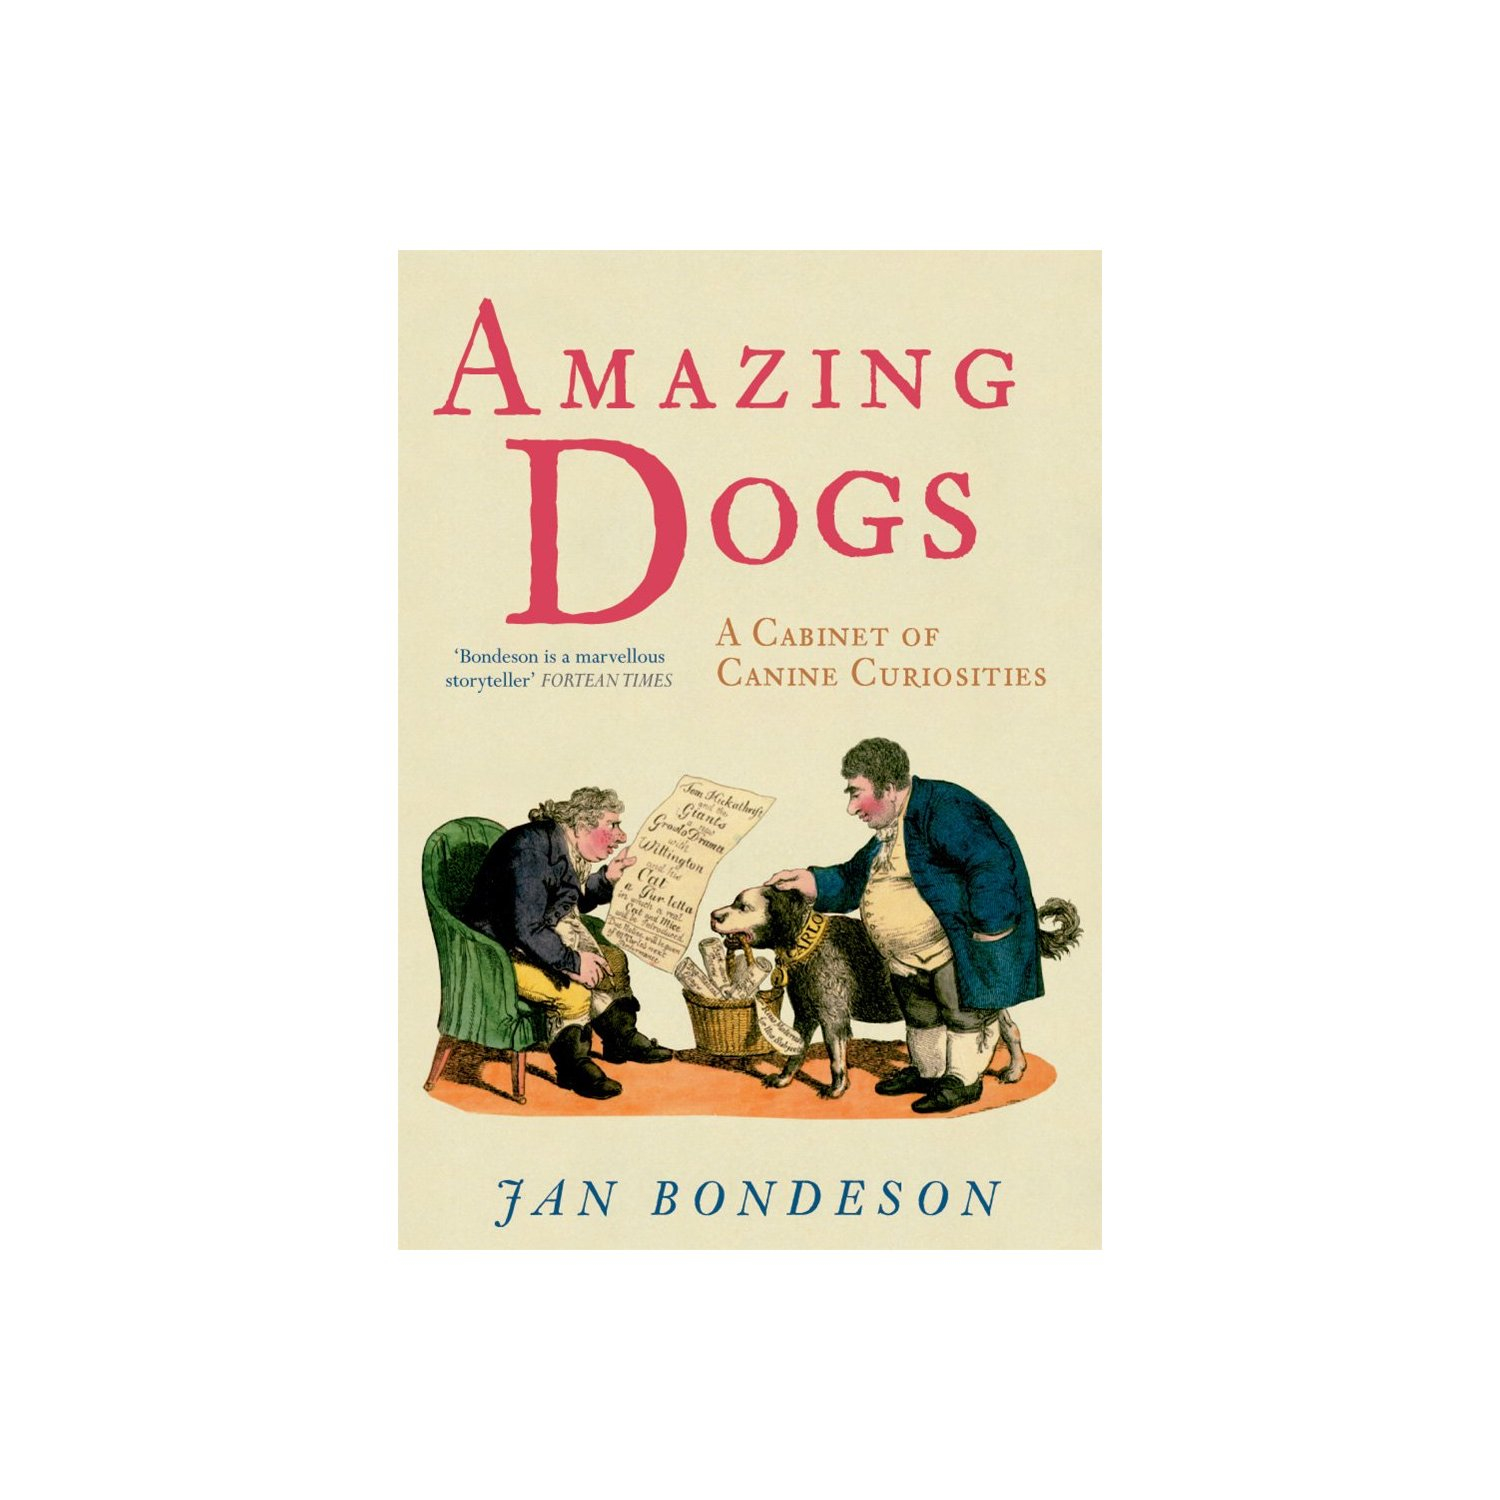 Canine Culture talks with noted author Jan Bondeson of Amazing Dogs: A Cabinet of Canine Curiosities, and shares some very fascinating stories.